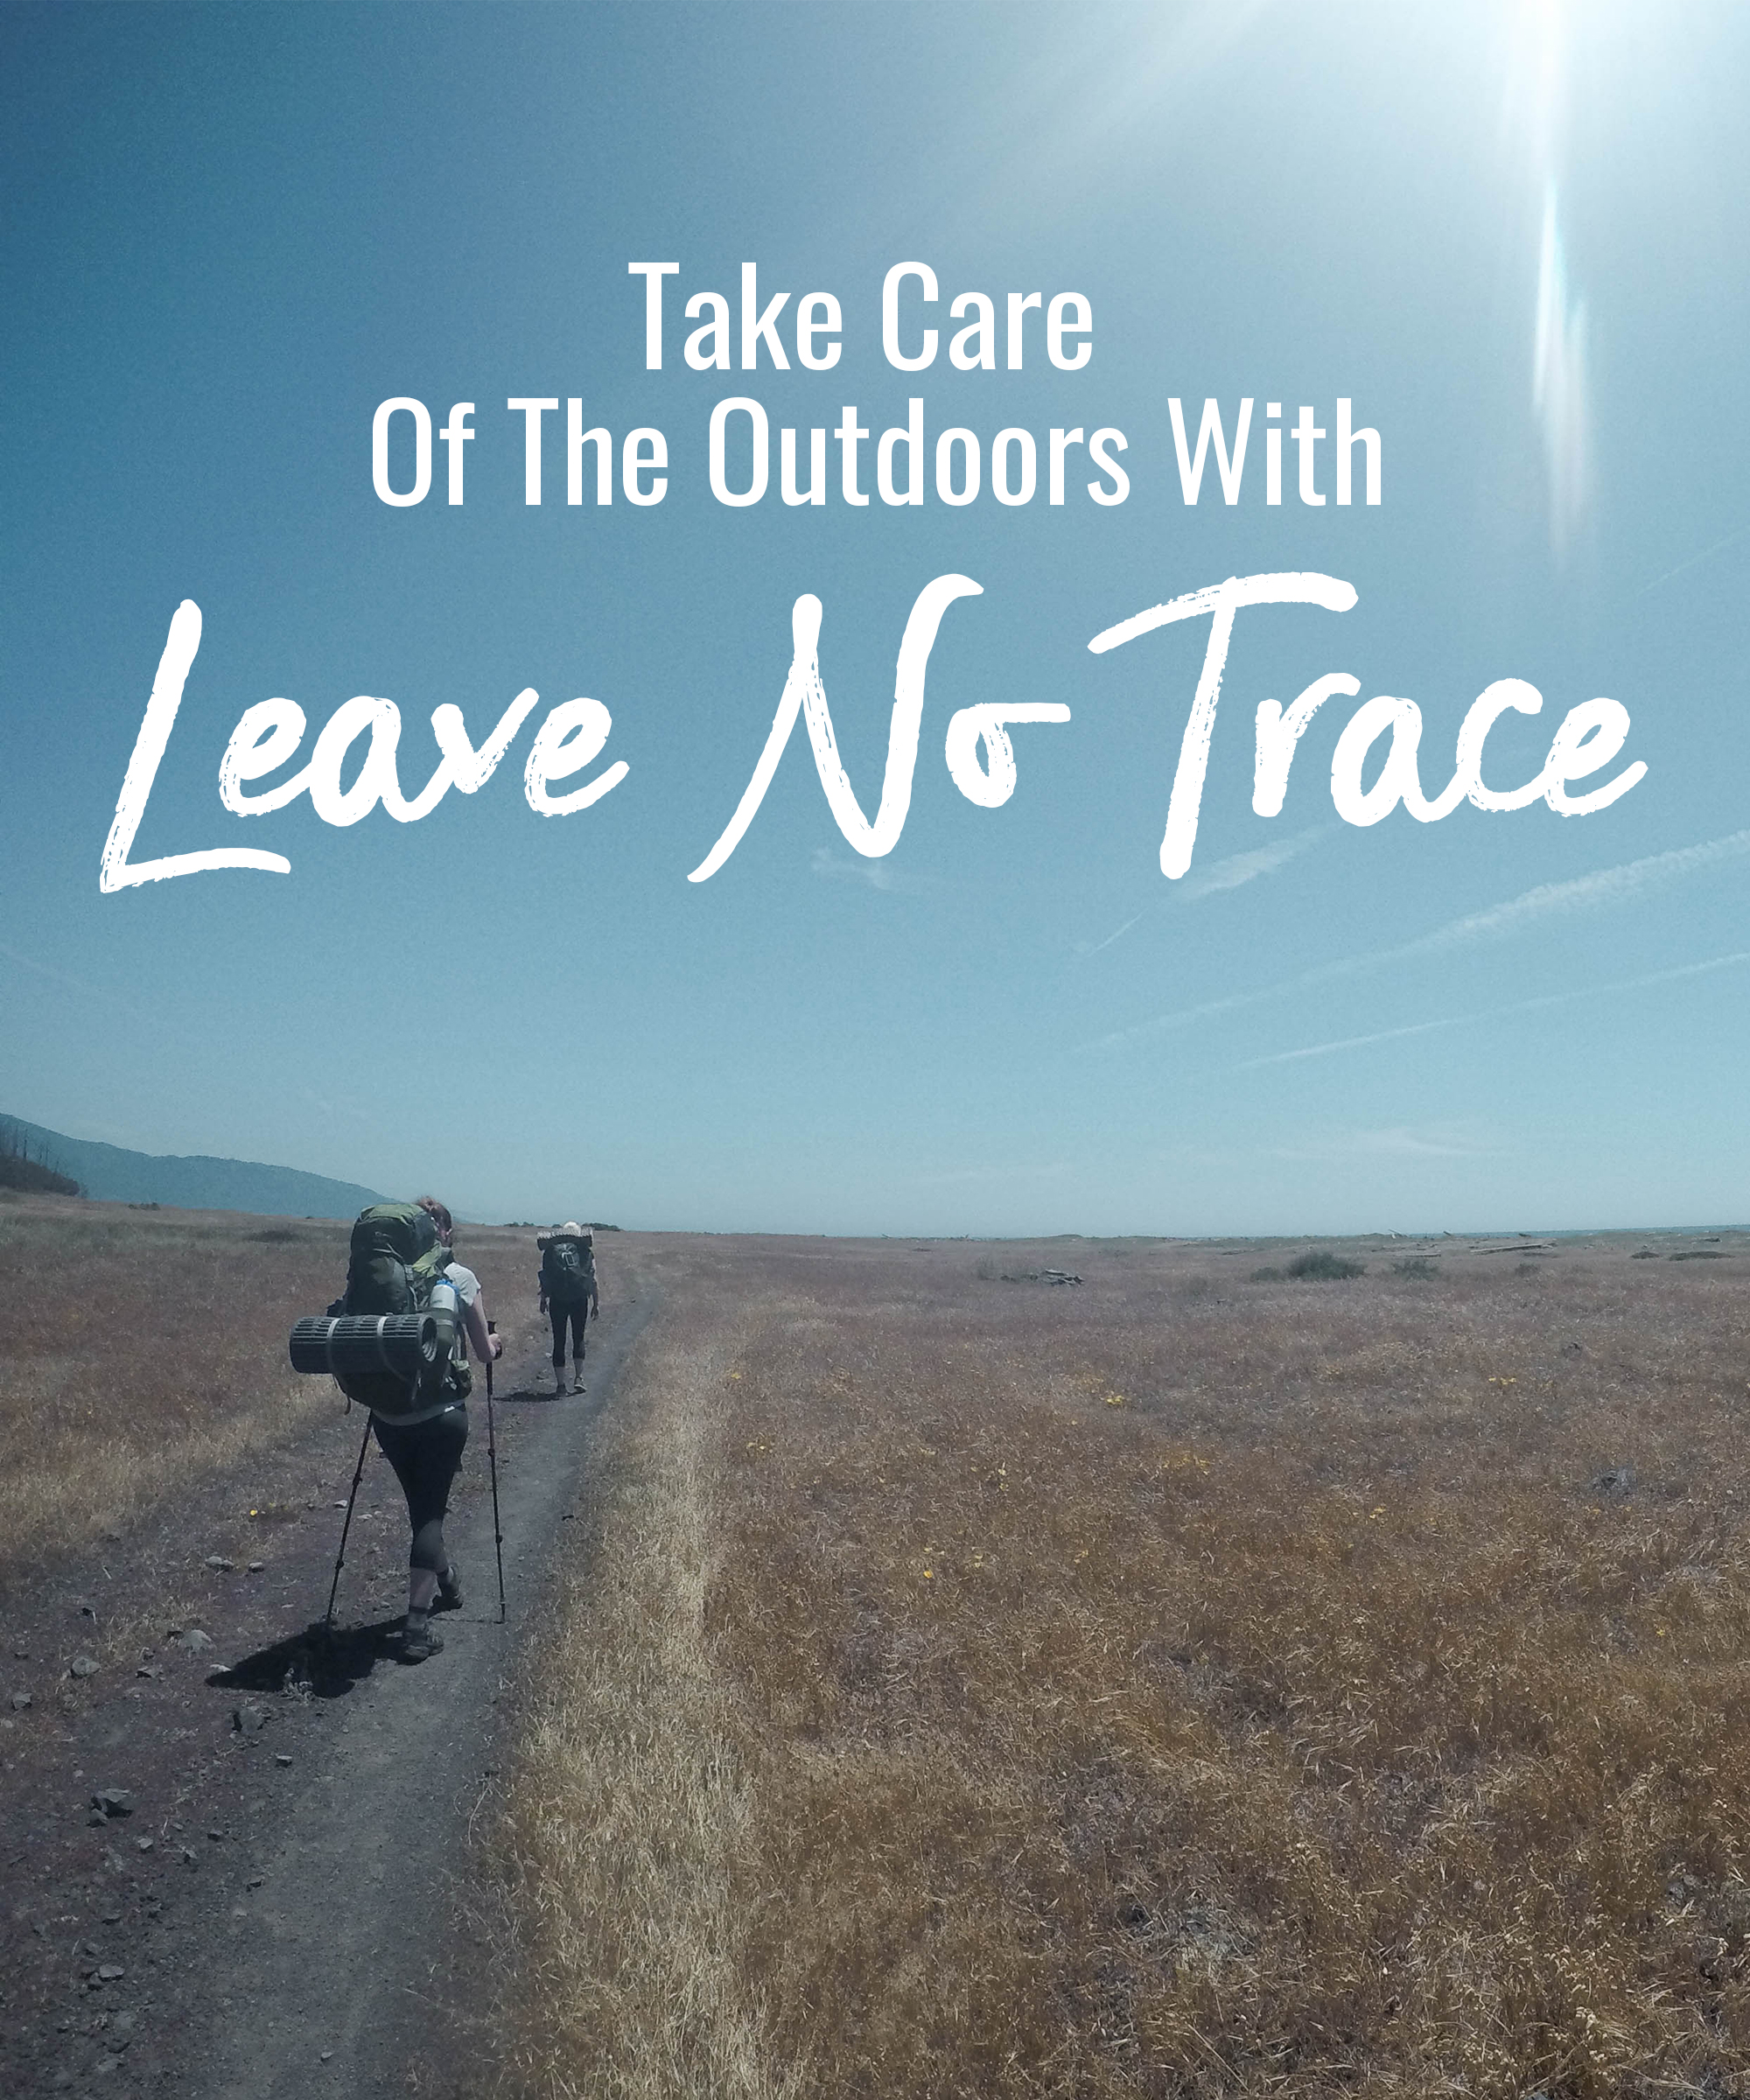 Take care of the outdoors with Leave No Trace